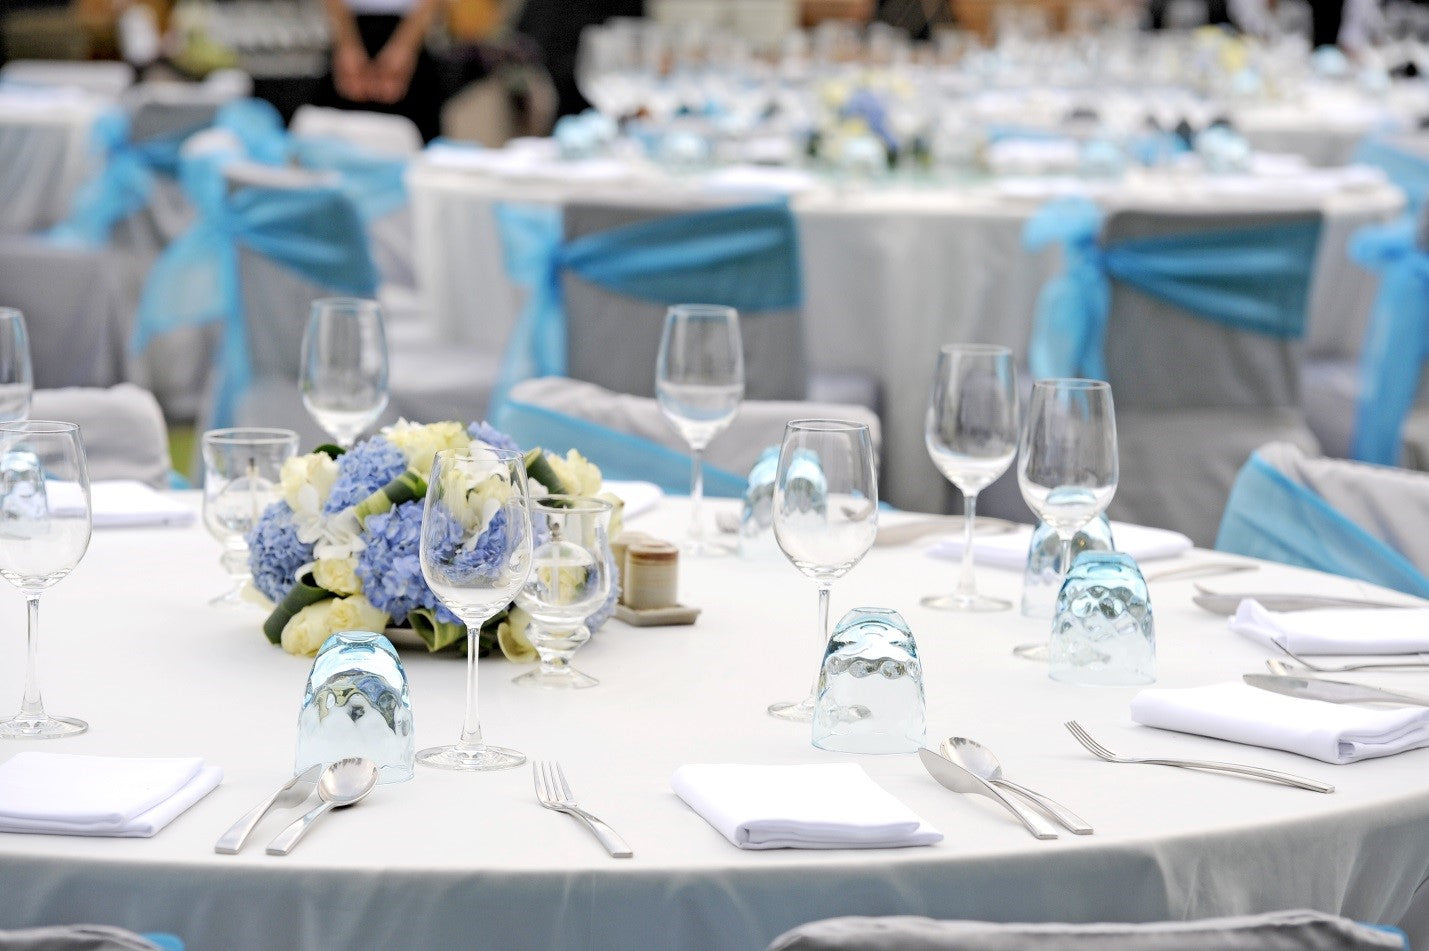 tablecloths at dinner banquet with chair covers and chair sashes